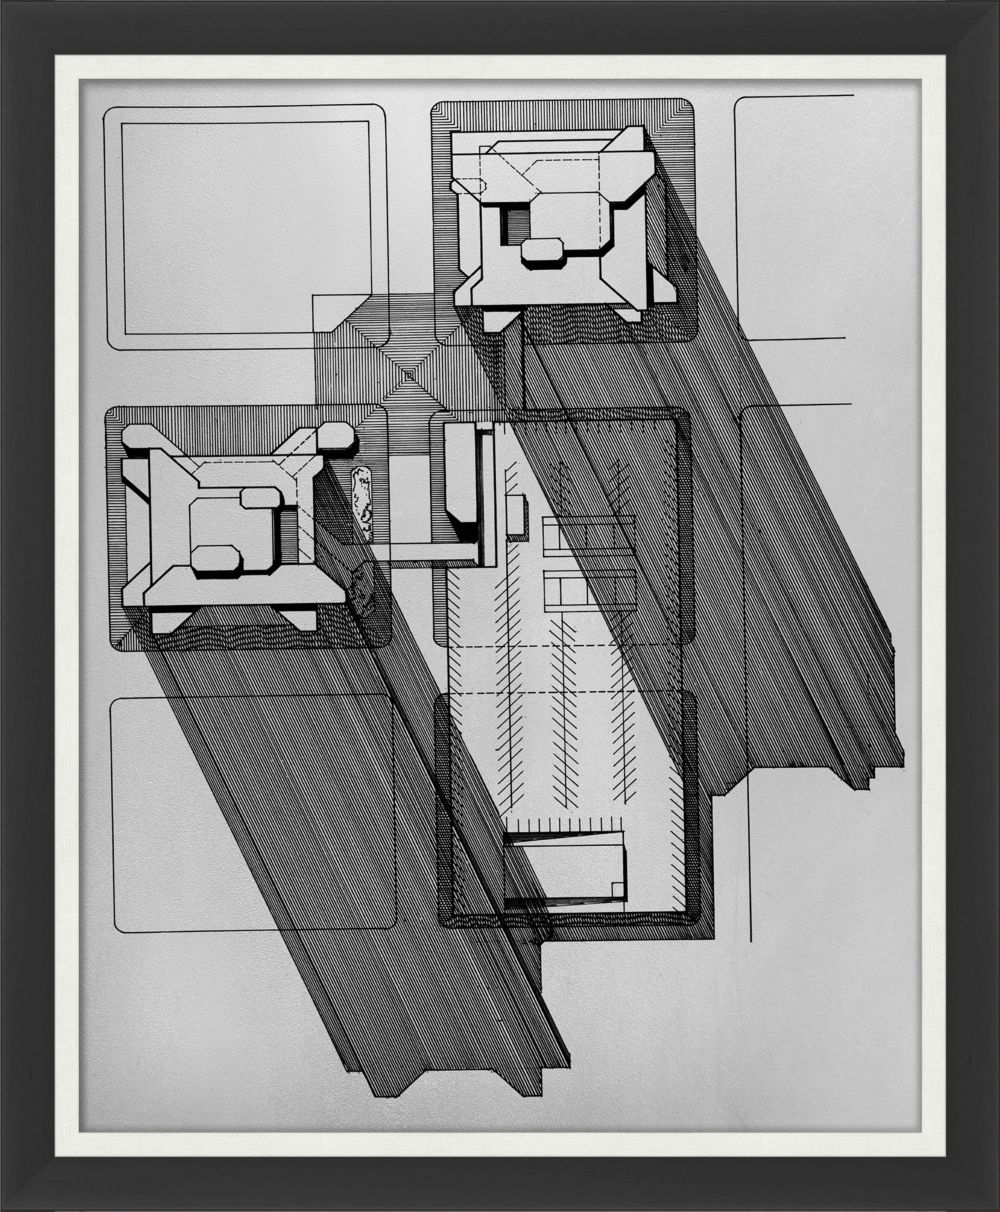 Aerial Architectural Plans 1